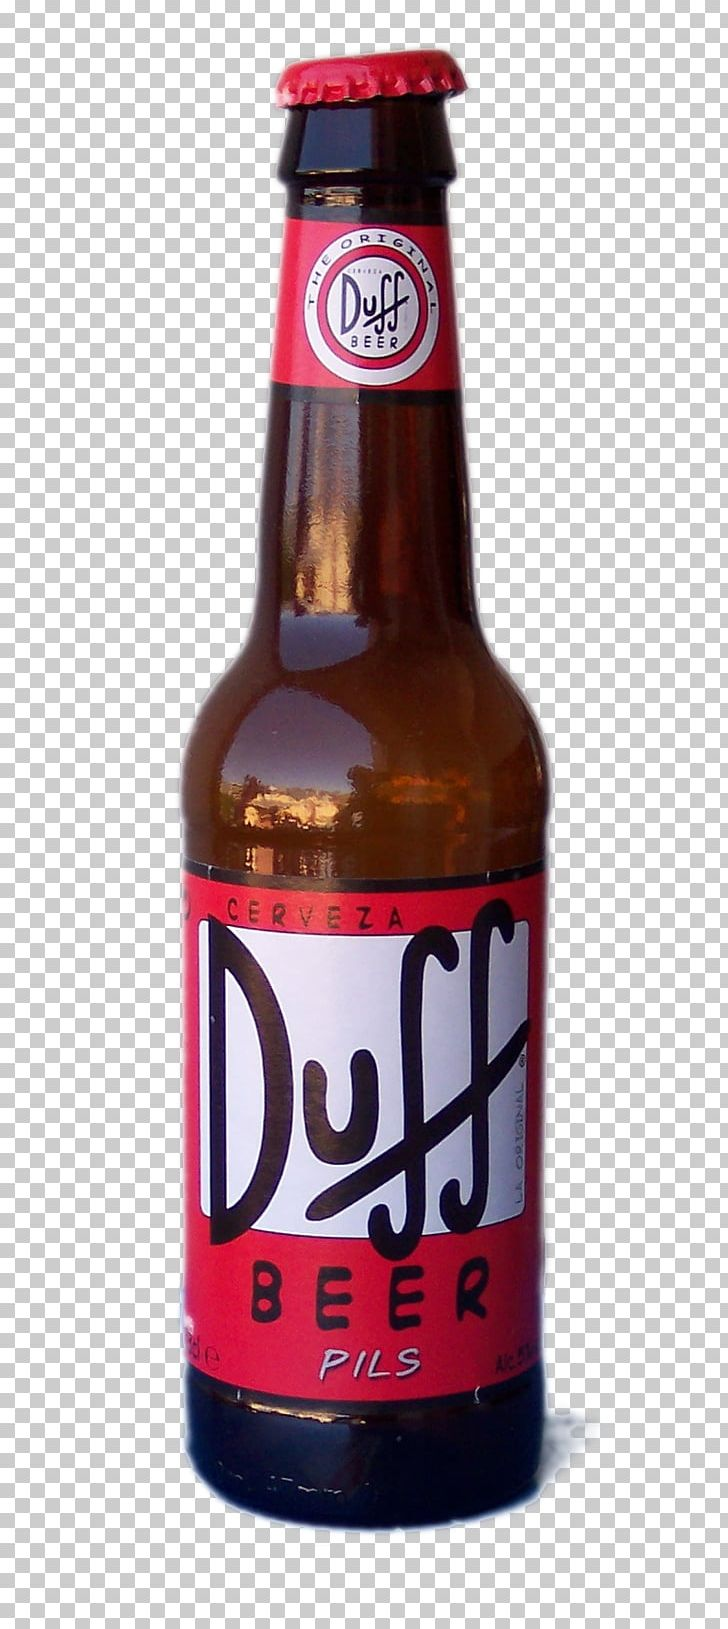 Duff Beer Budweiser Beer Bottle PNG, Clipart, Alcoholic.